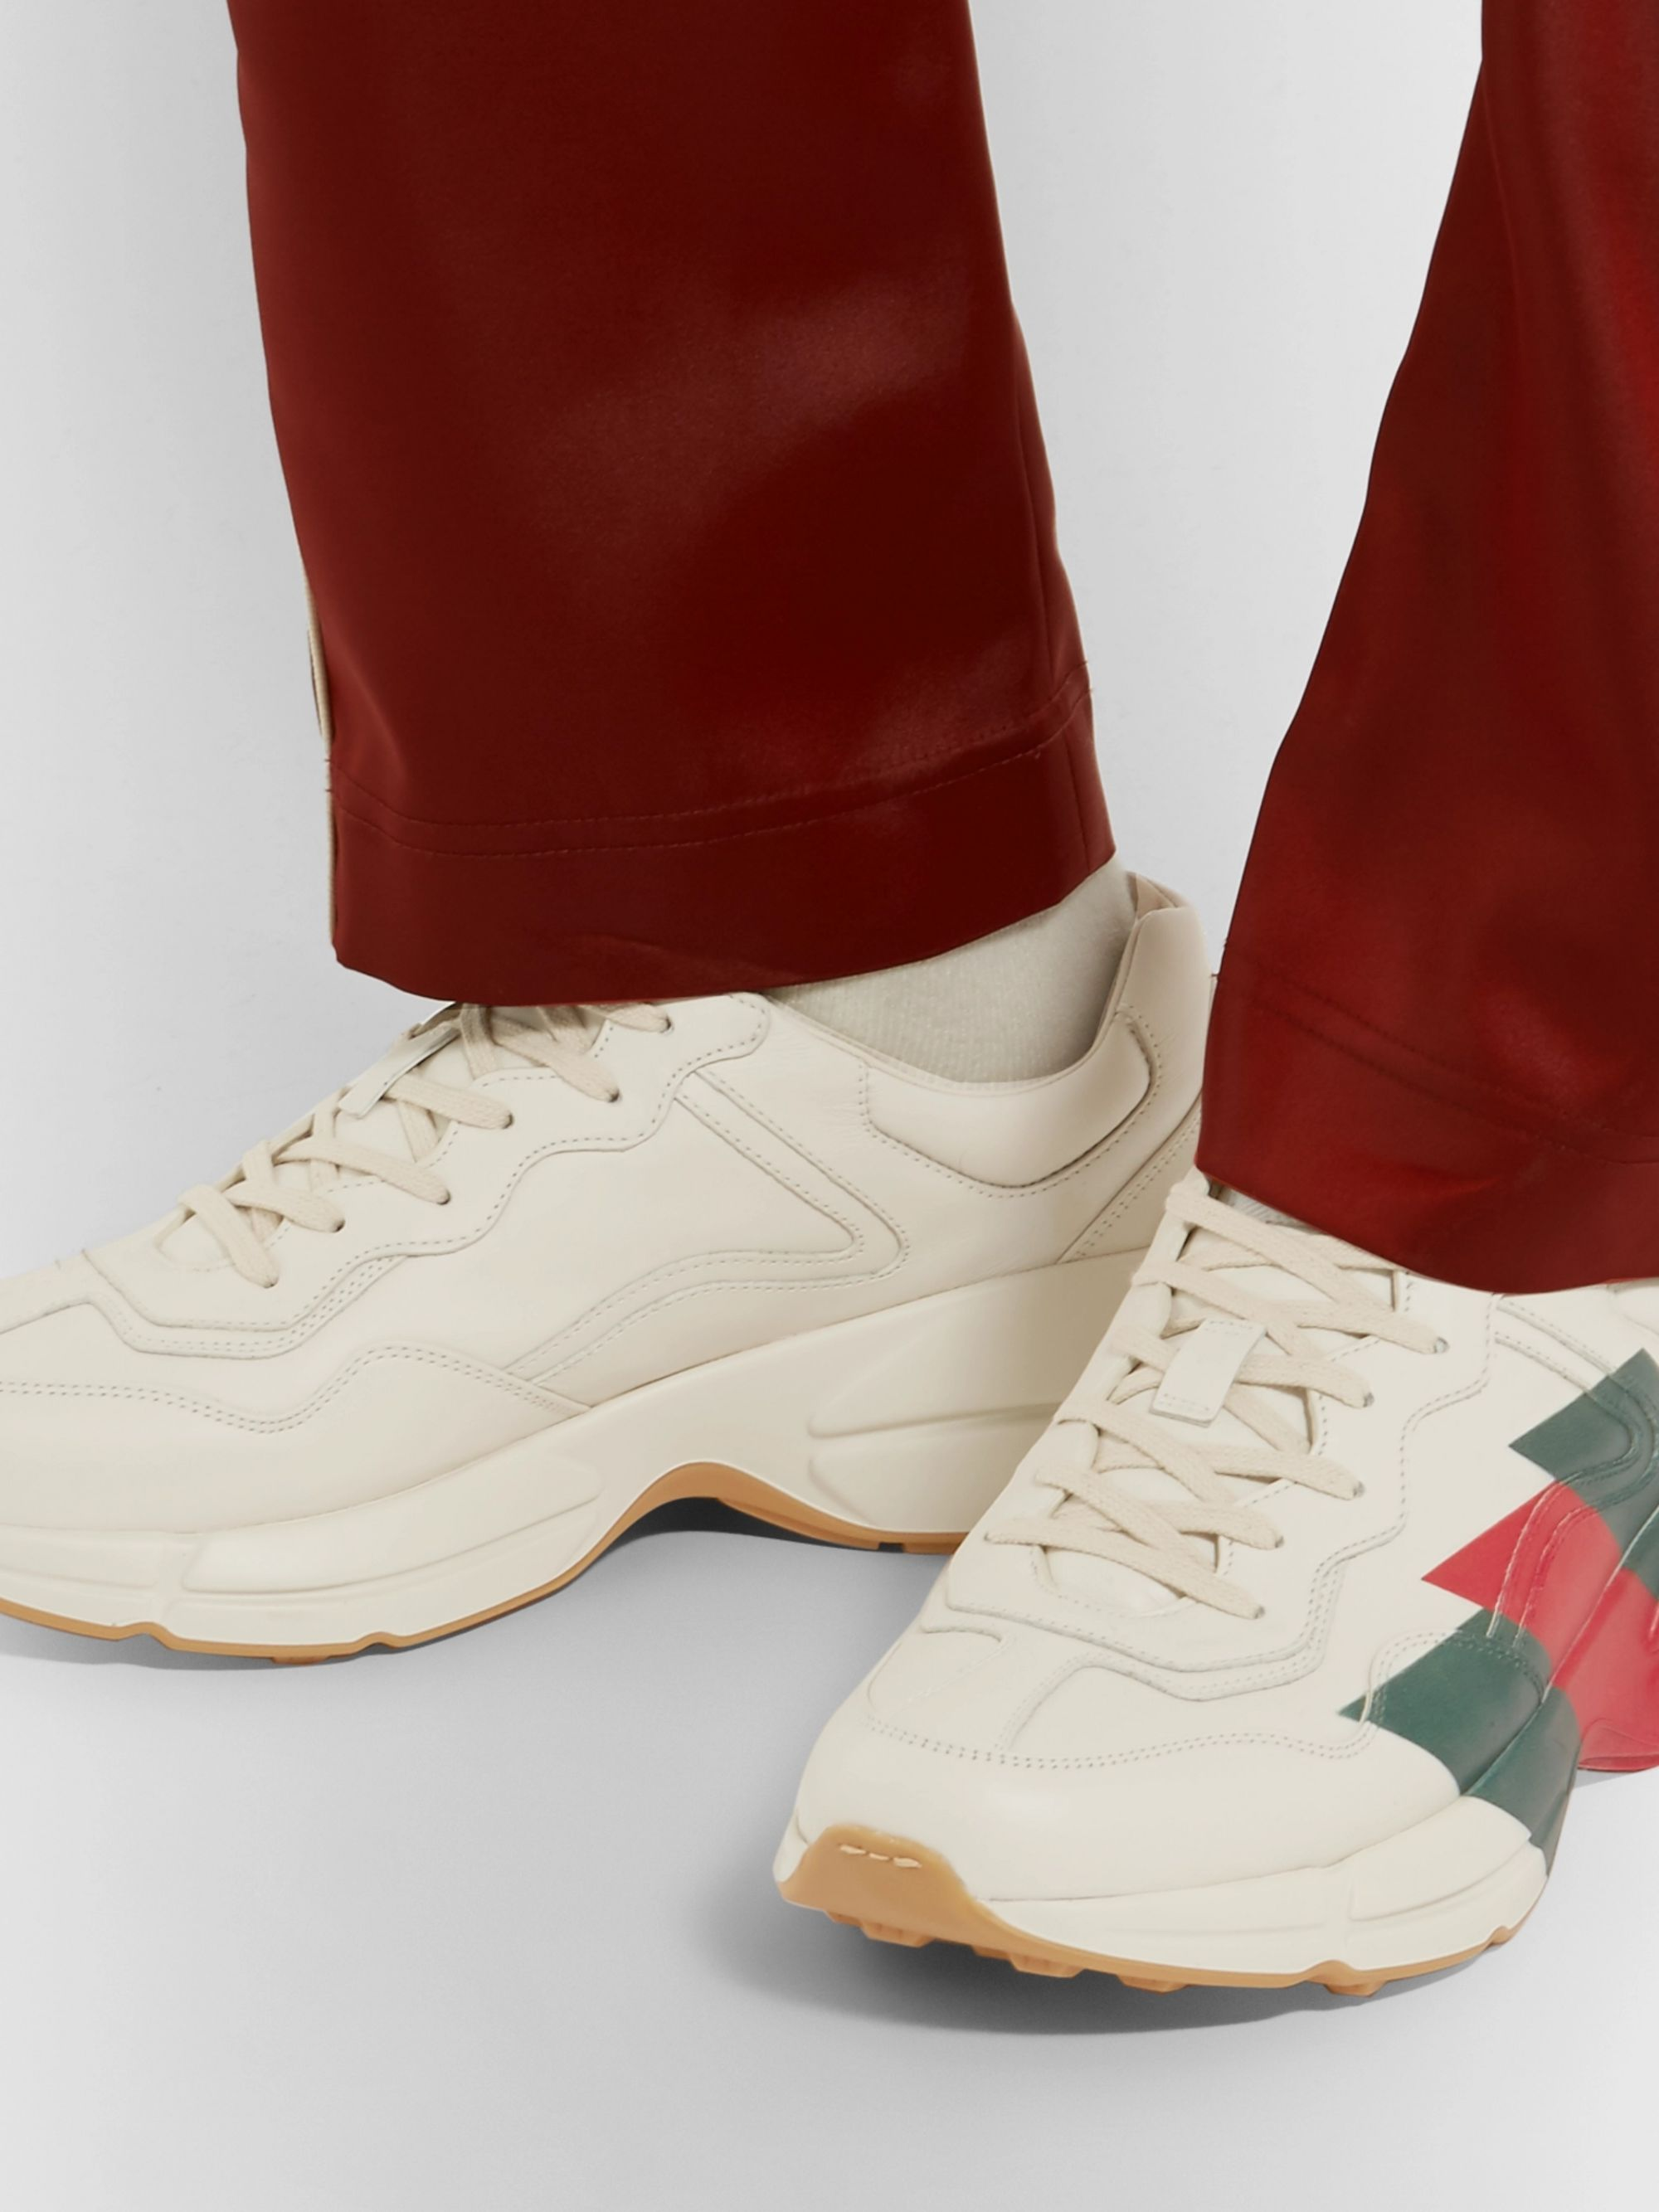 Gucci Rhyton Striped Leather Sneakers